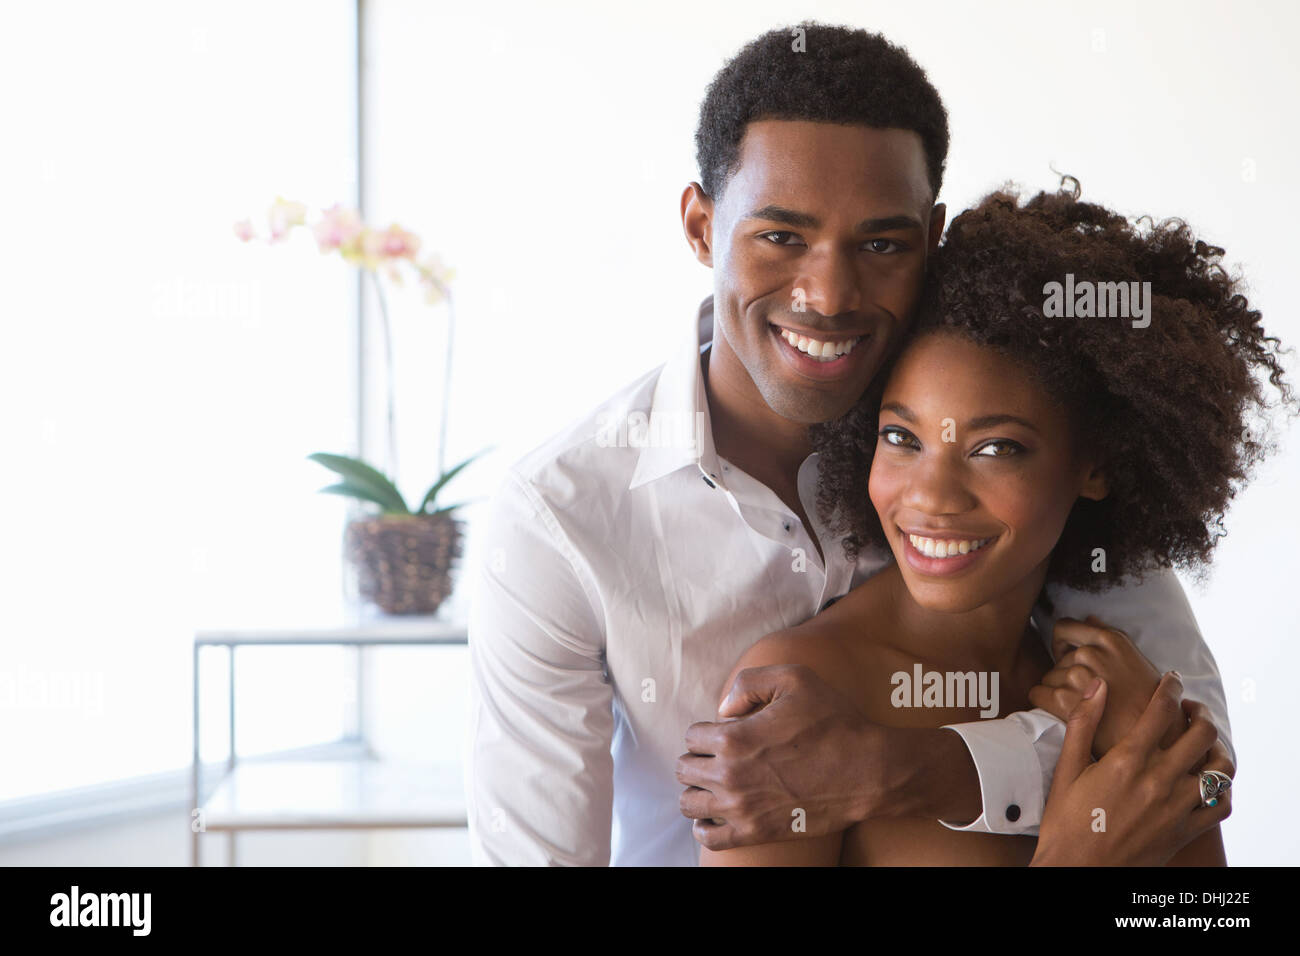 Portrait of young couple, man with arm around woman - Stock Image